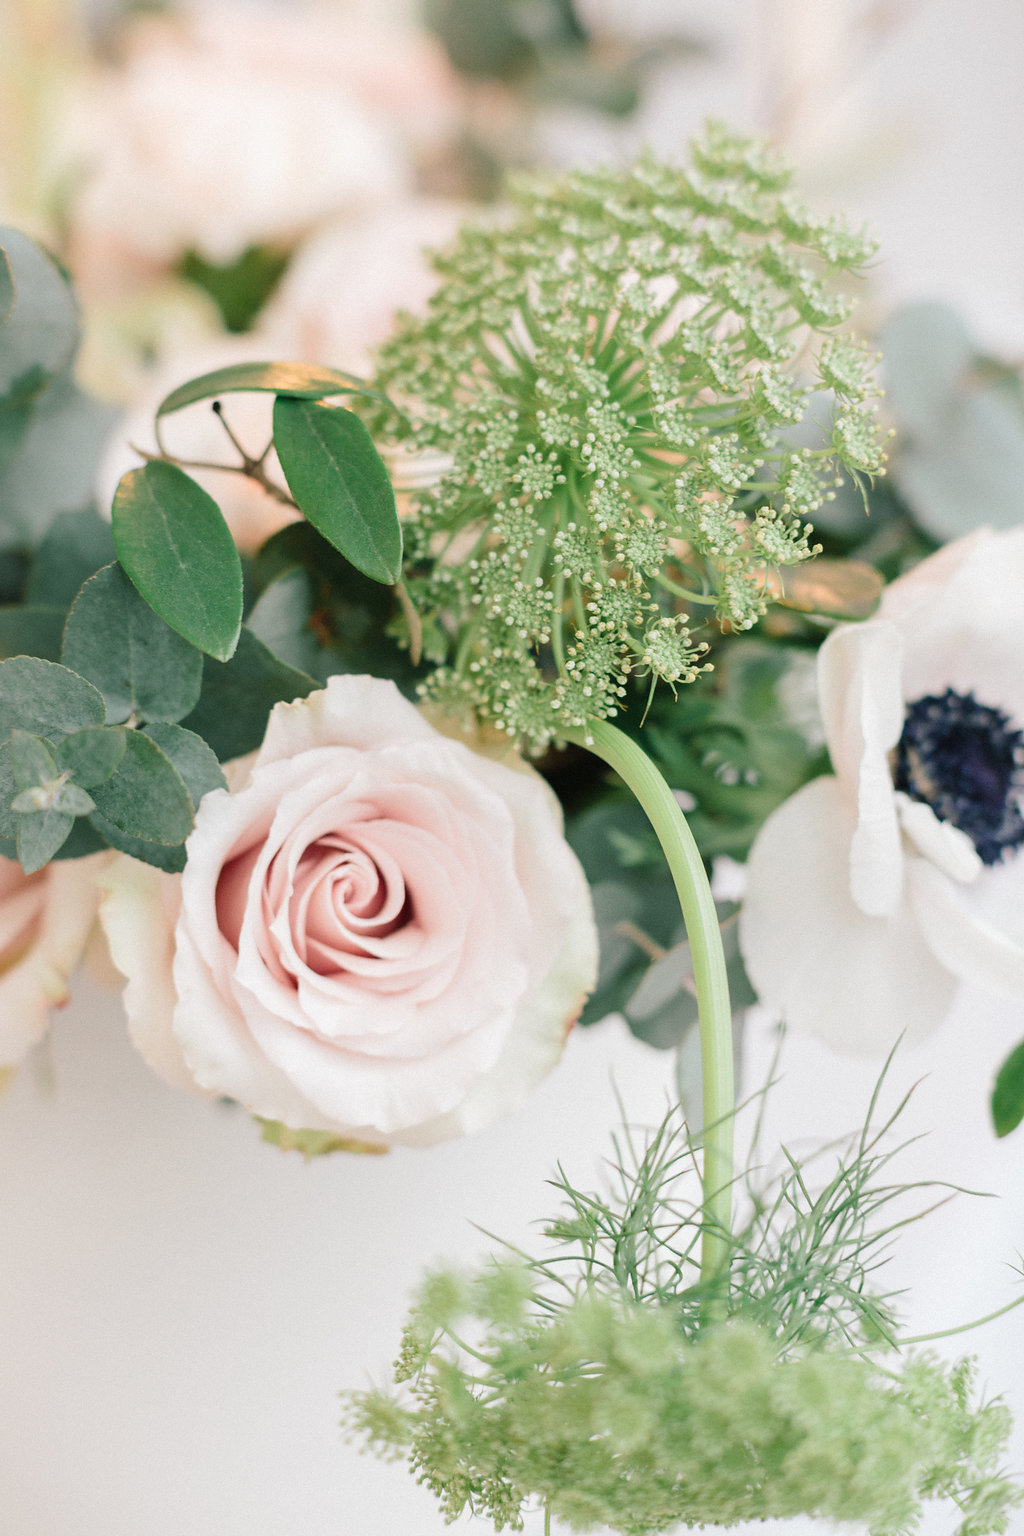 floral centerpieces - photo by Julien Bonjour Photographe http://ruffledblog.com/airy-industrial-wedding-inspiration-for-spring